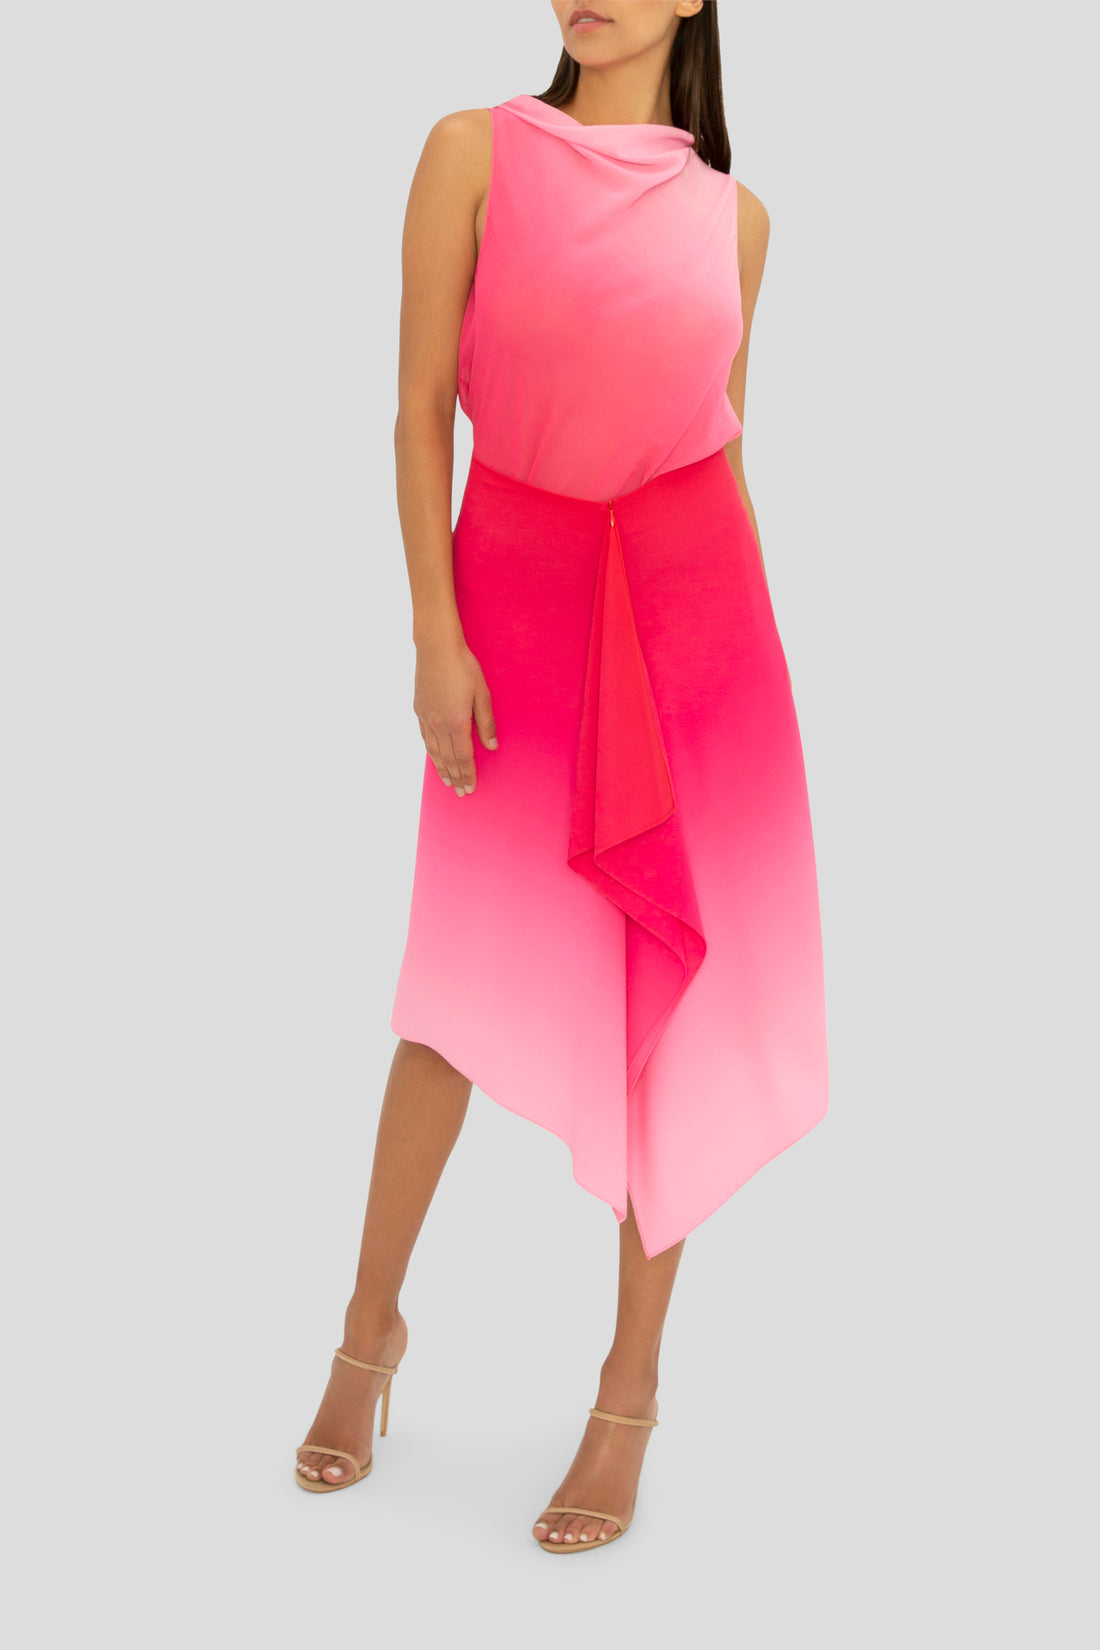 THE PASSION PINK OMBRE FLIRT SKIRT